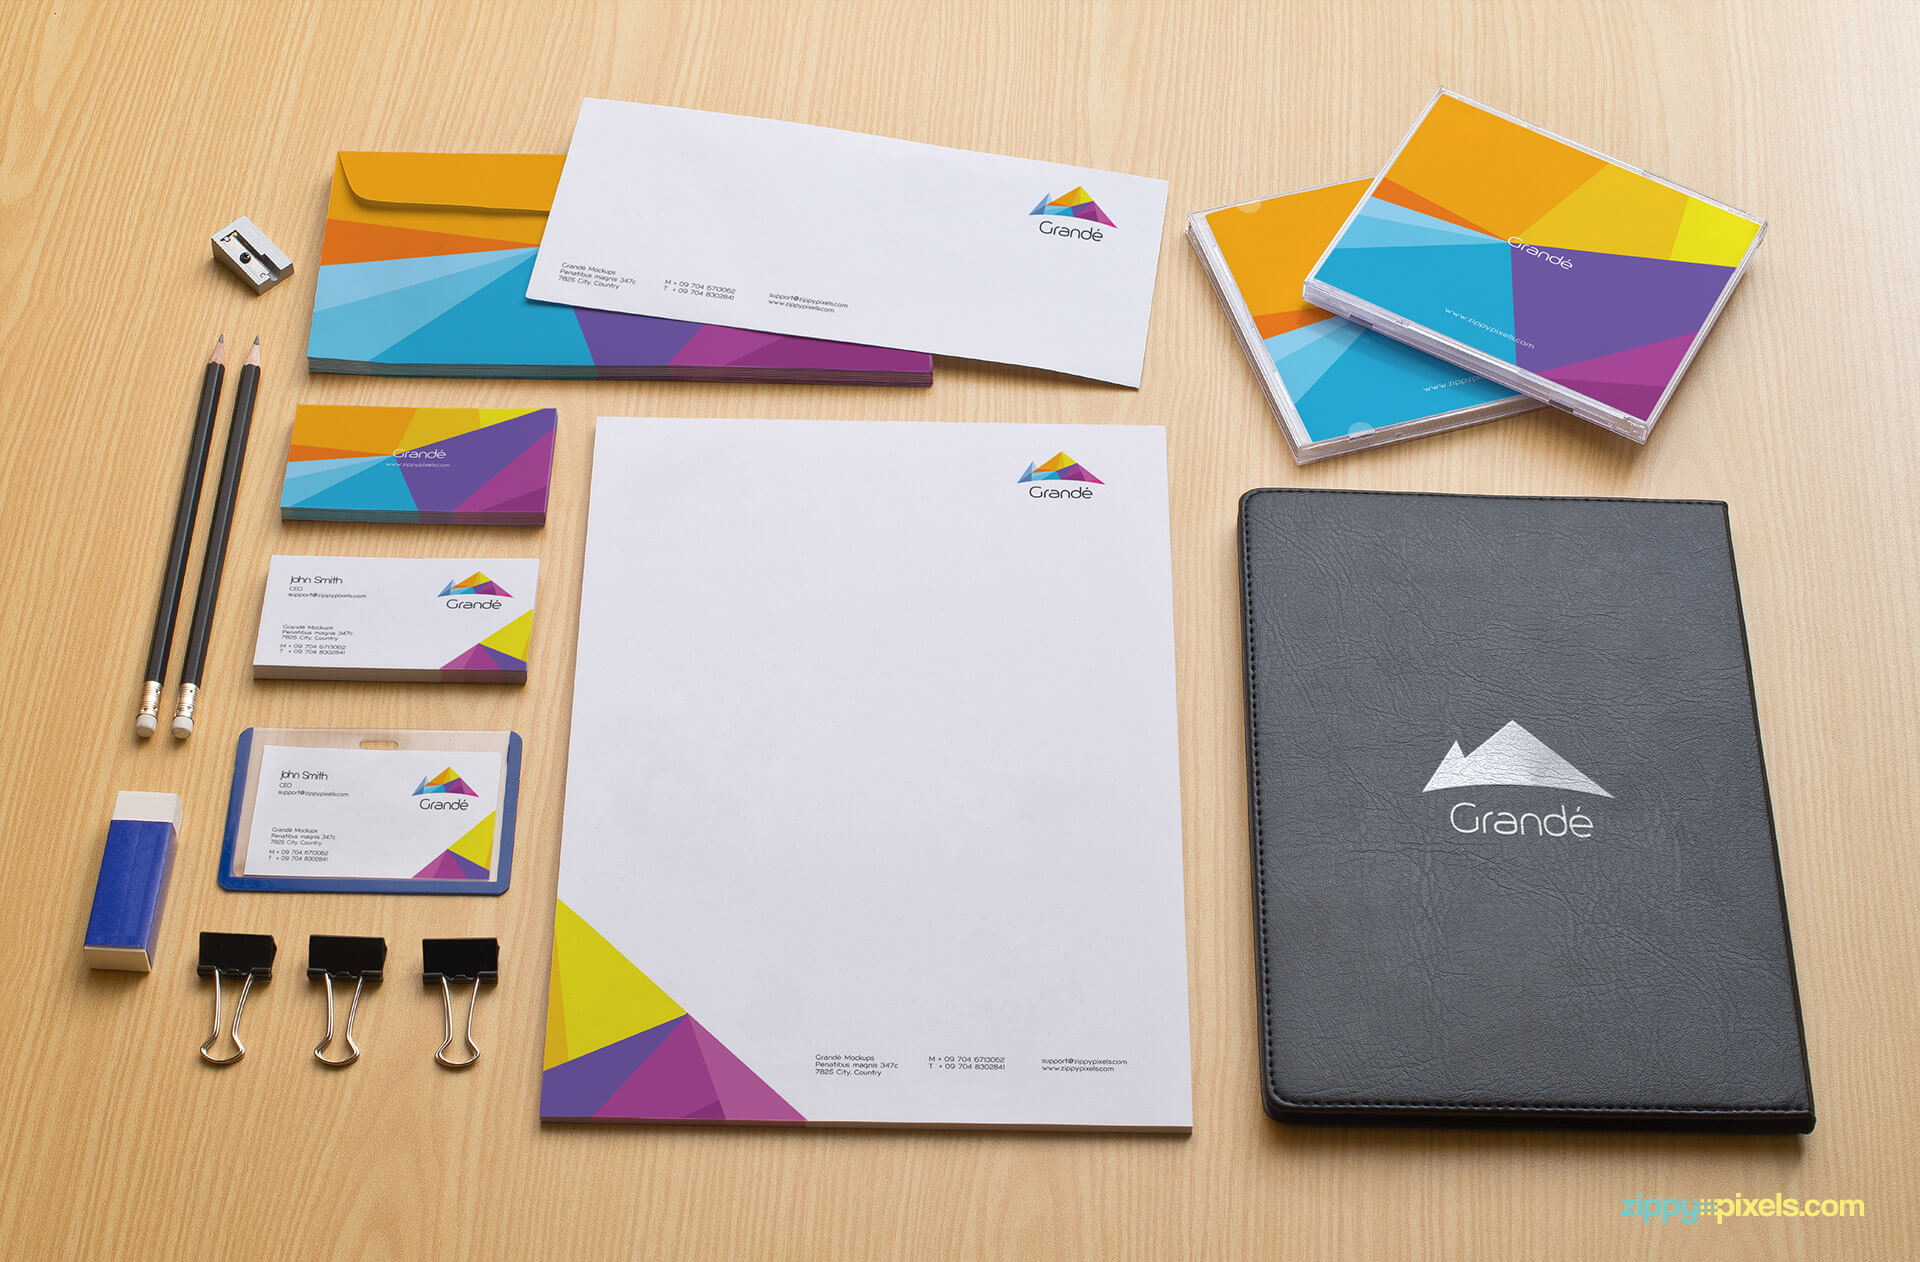 Corporate Identity Stationery Mockup with Envelopes, CD Covers, Business Cards, Letterhead and Leather Diary